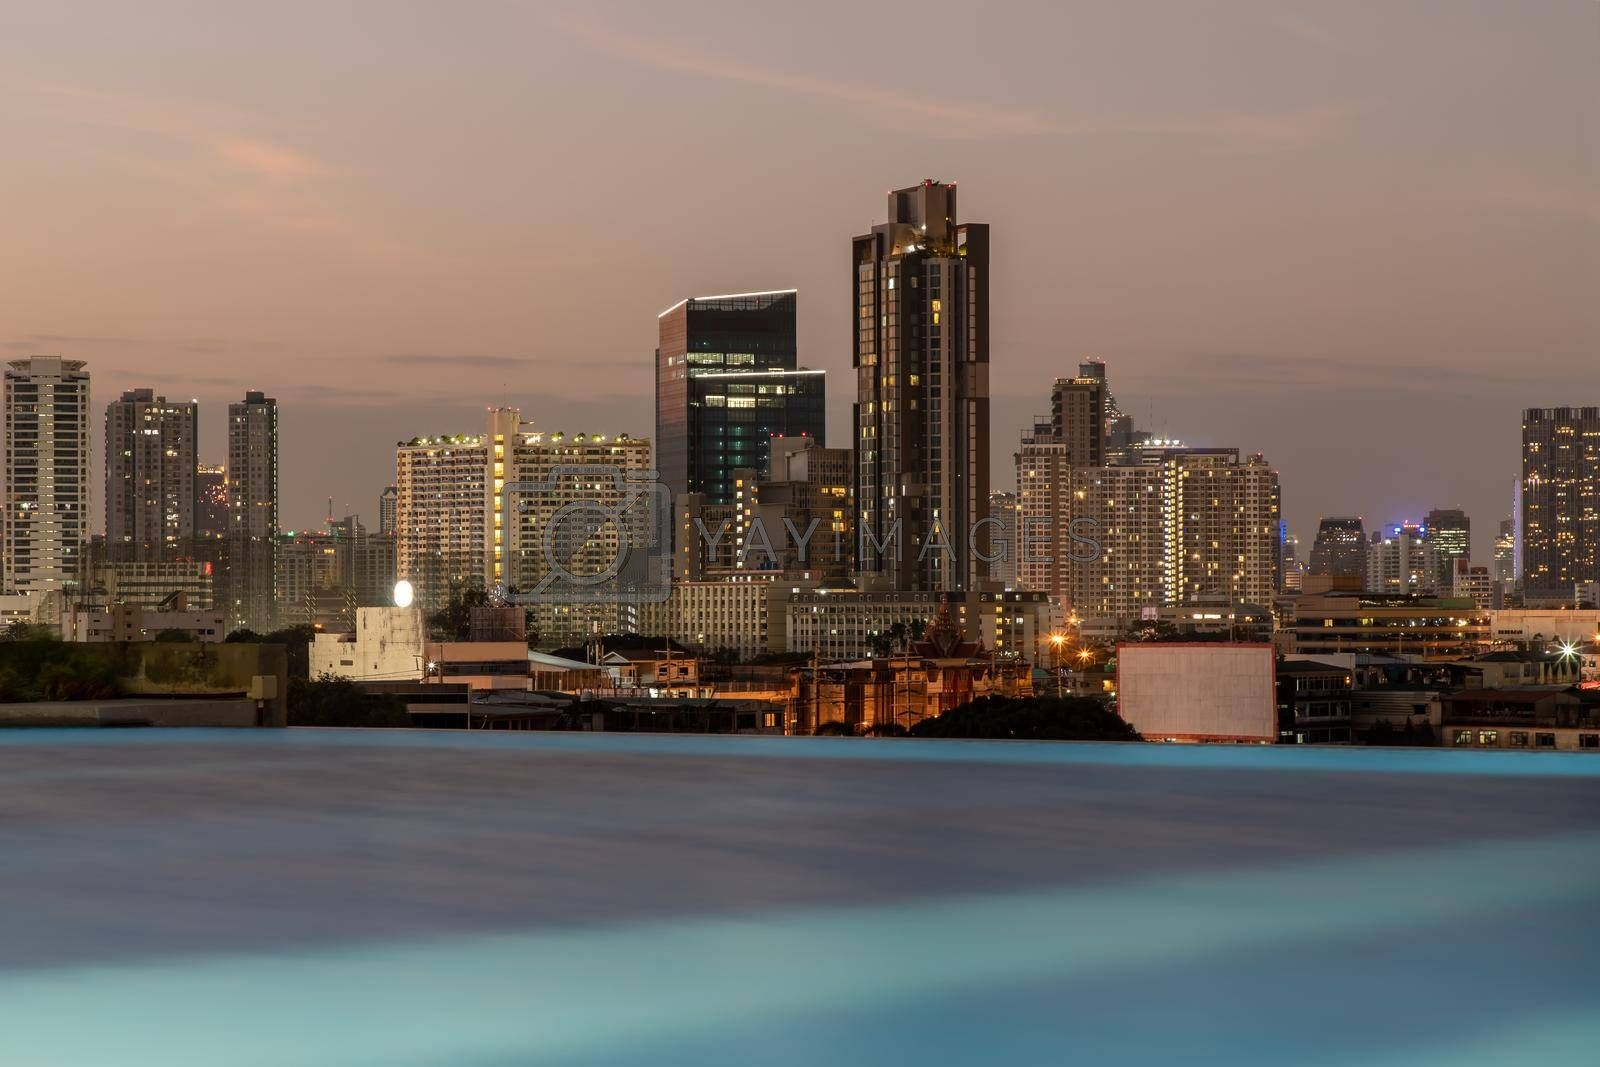 Bangkok, thailand - Dec 30, 2020 : Silhouette of Bangkok city skylines with light reflection in swimming pool during sunset. Selective focus.